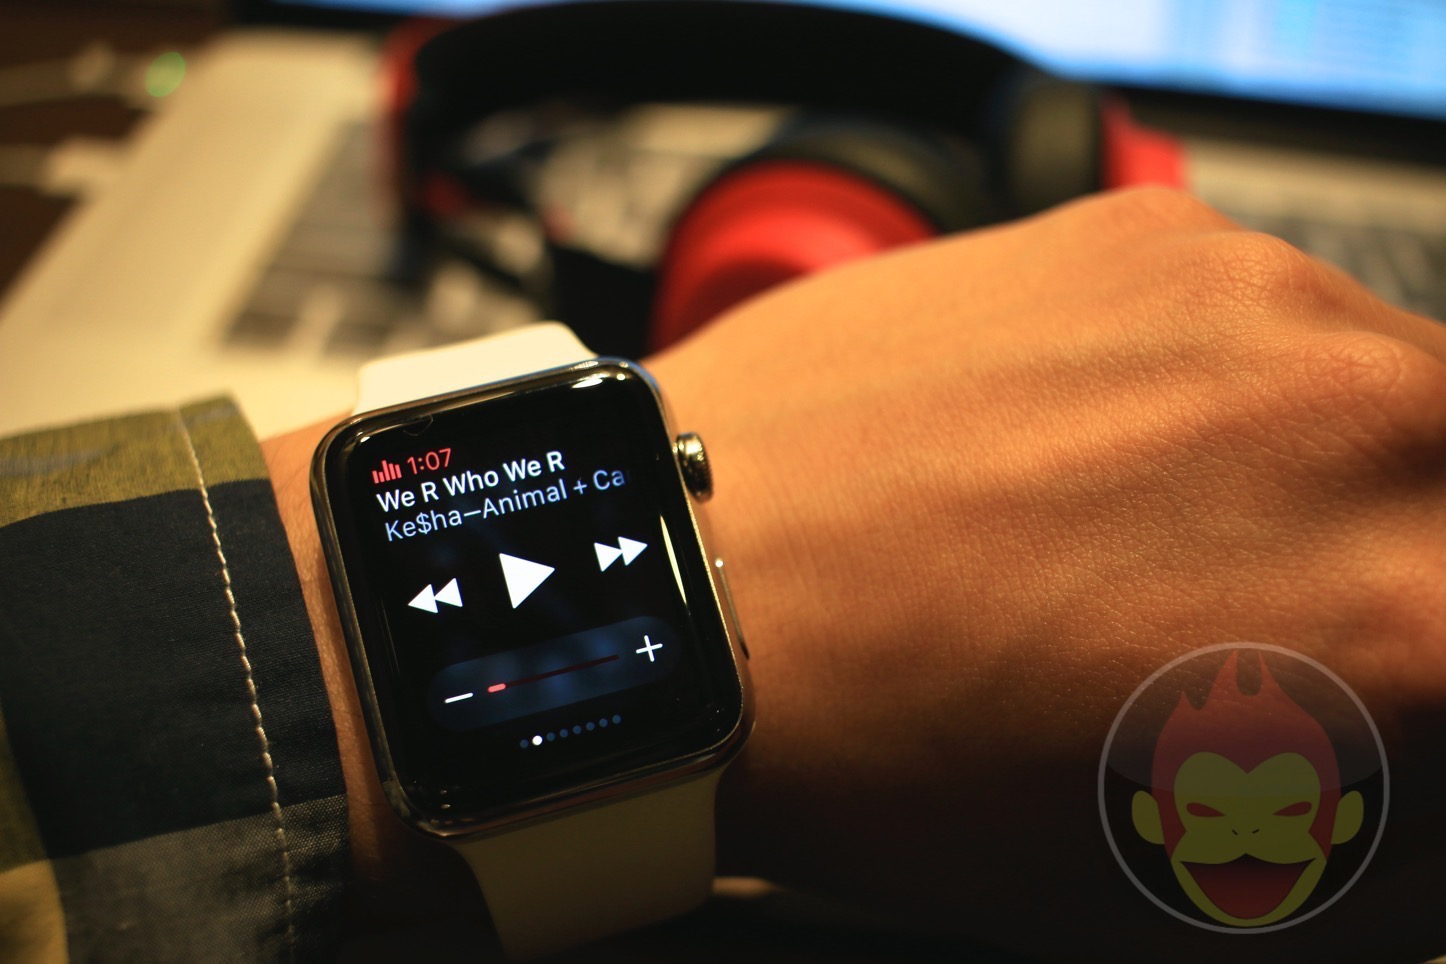 Using Glances with Apple Watch To Control Music 01